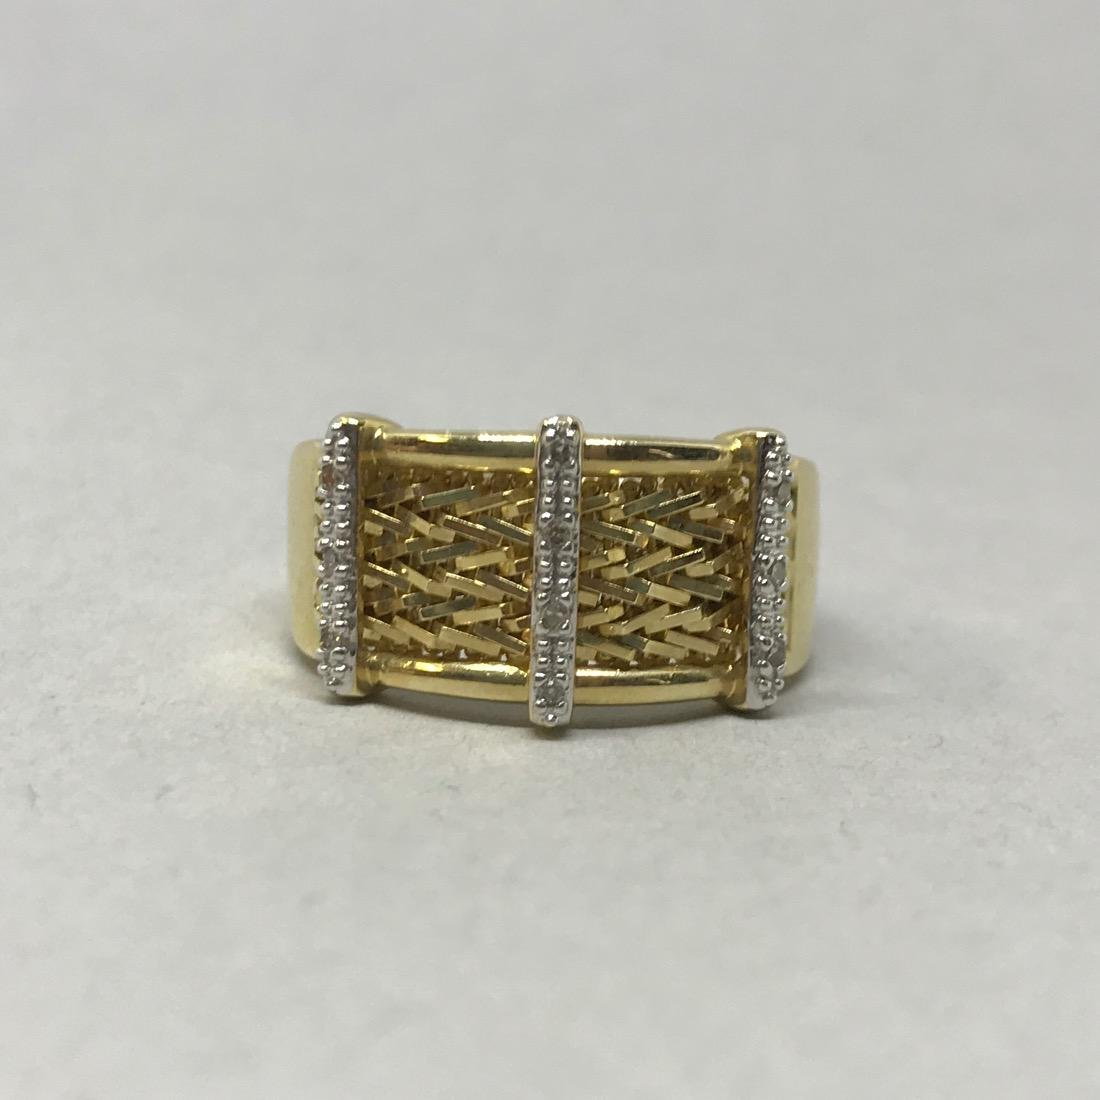 14 Kt Gold Ring with Diamonds - 3